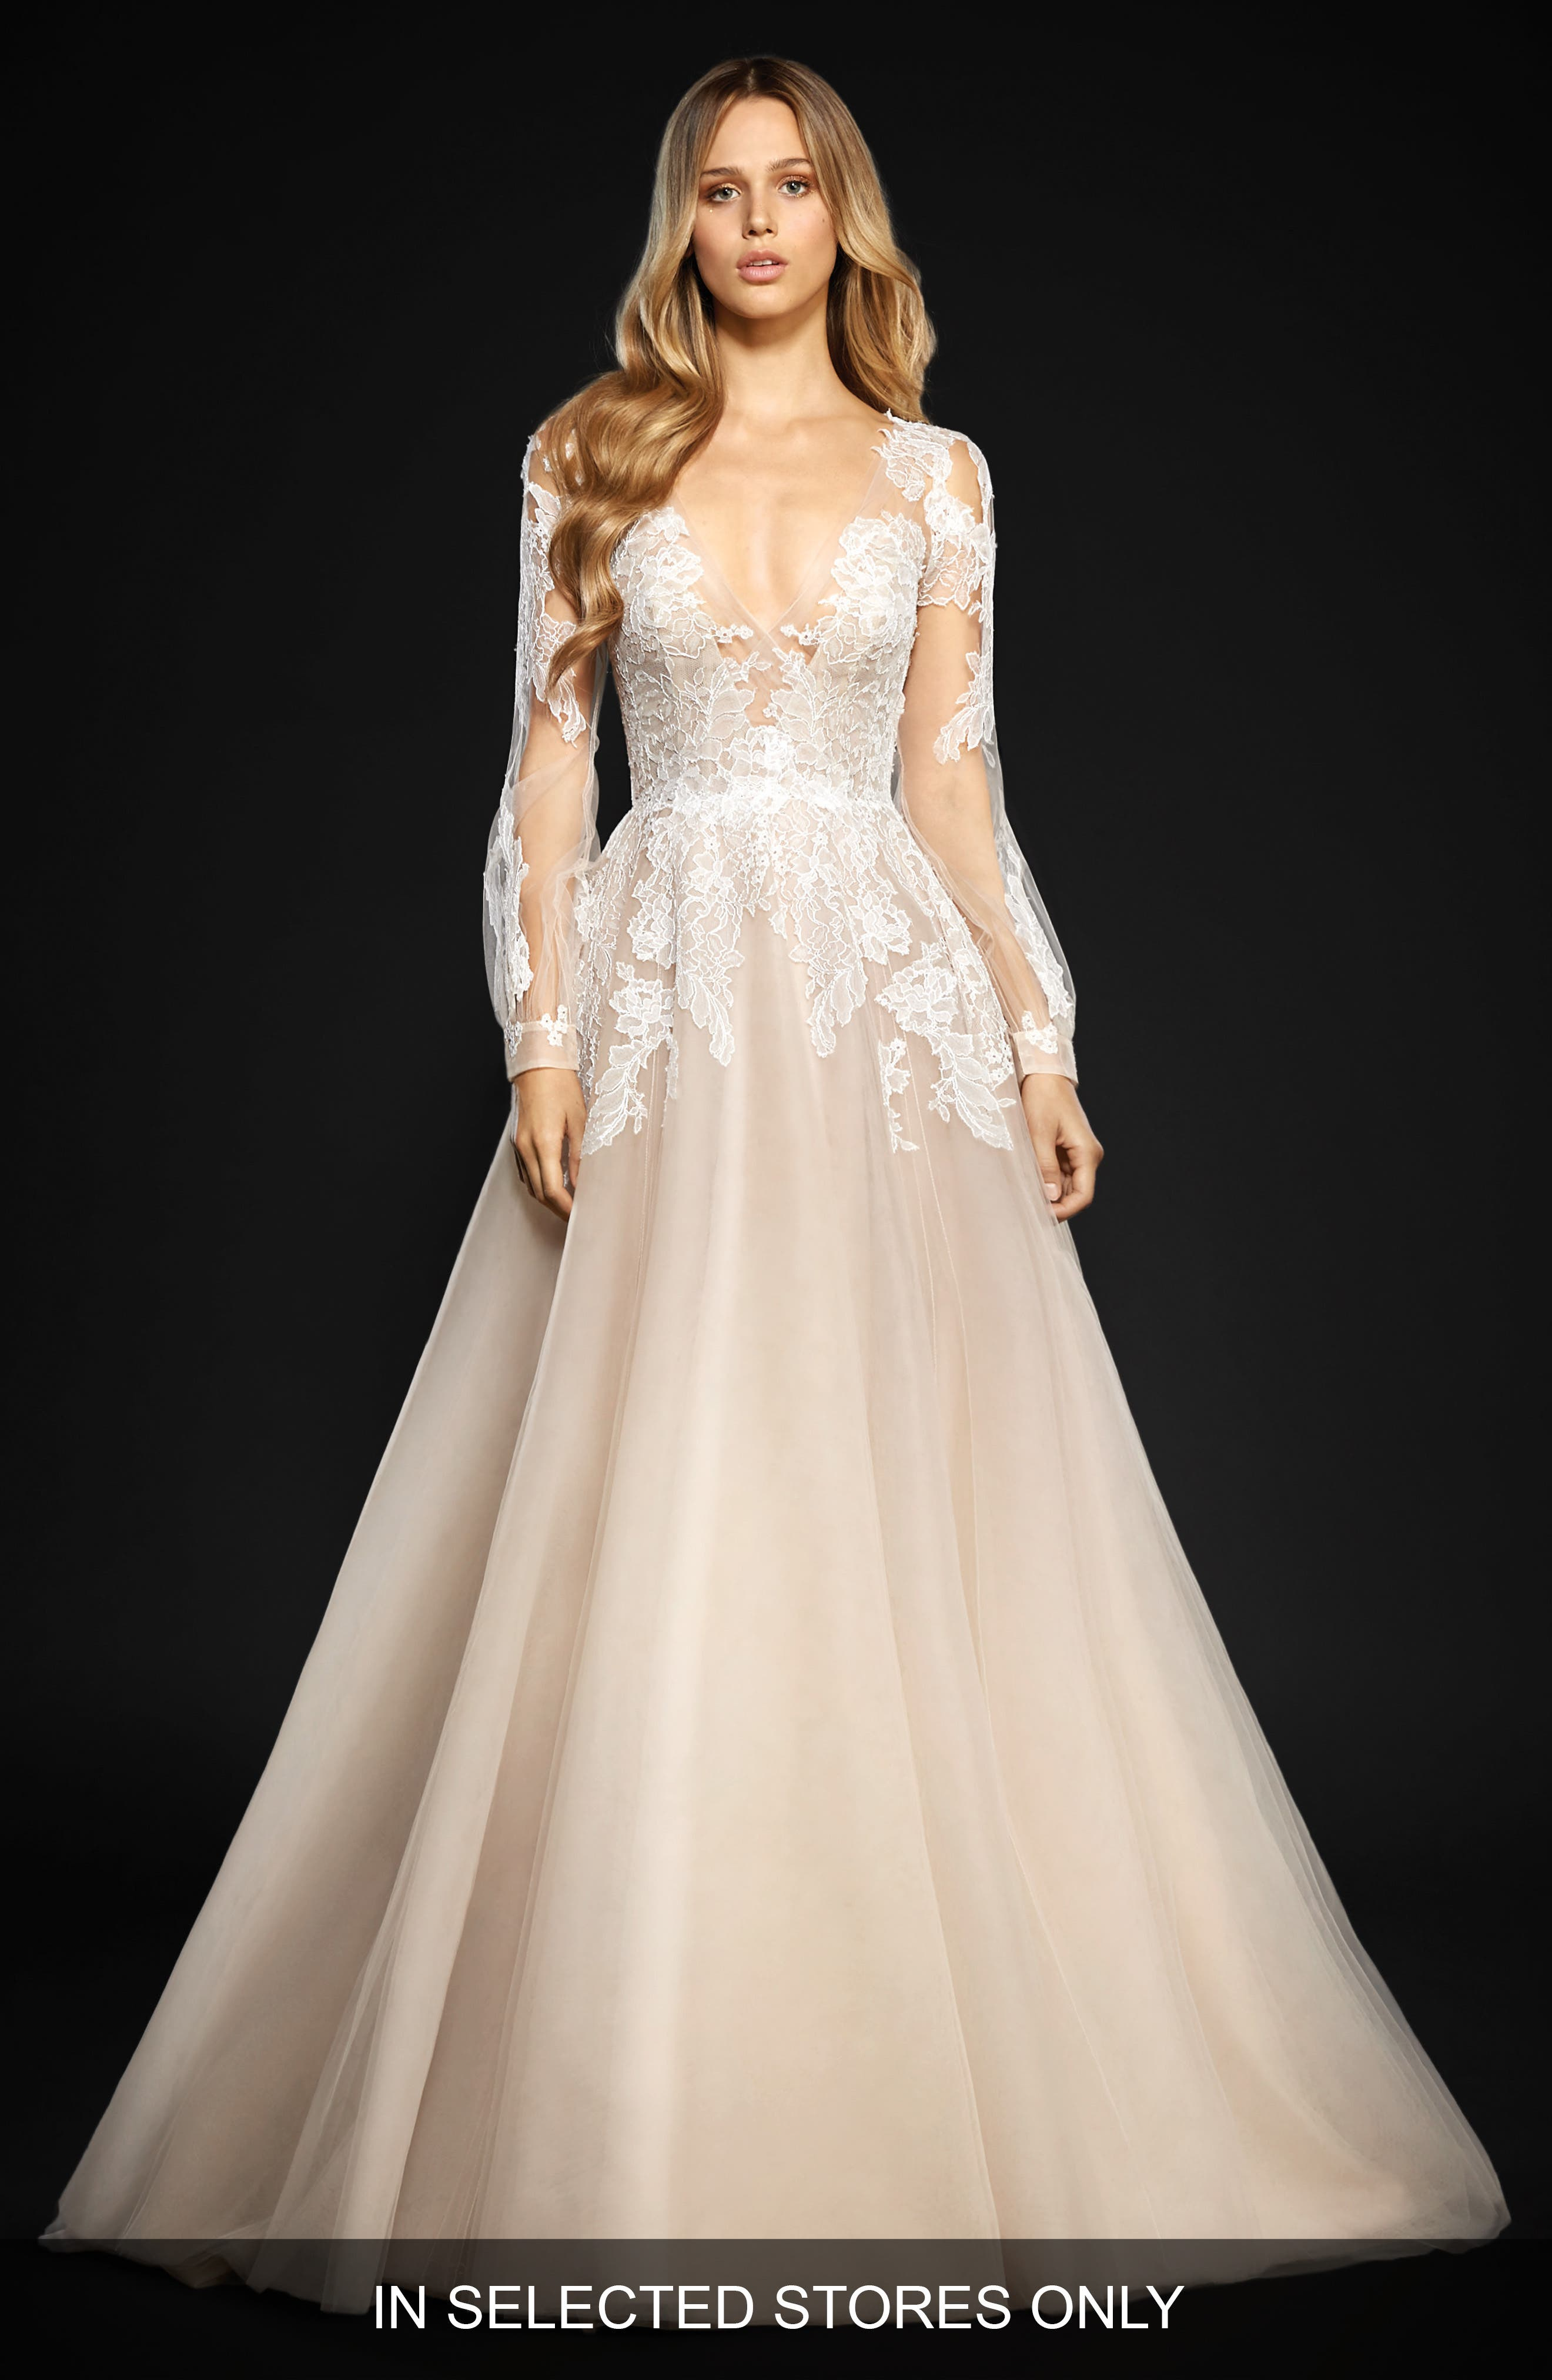 Womens hayley paige wedding dresses bridal gowns nordstrom ombrellifo Image collections